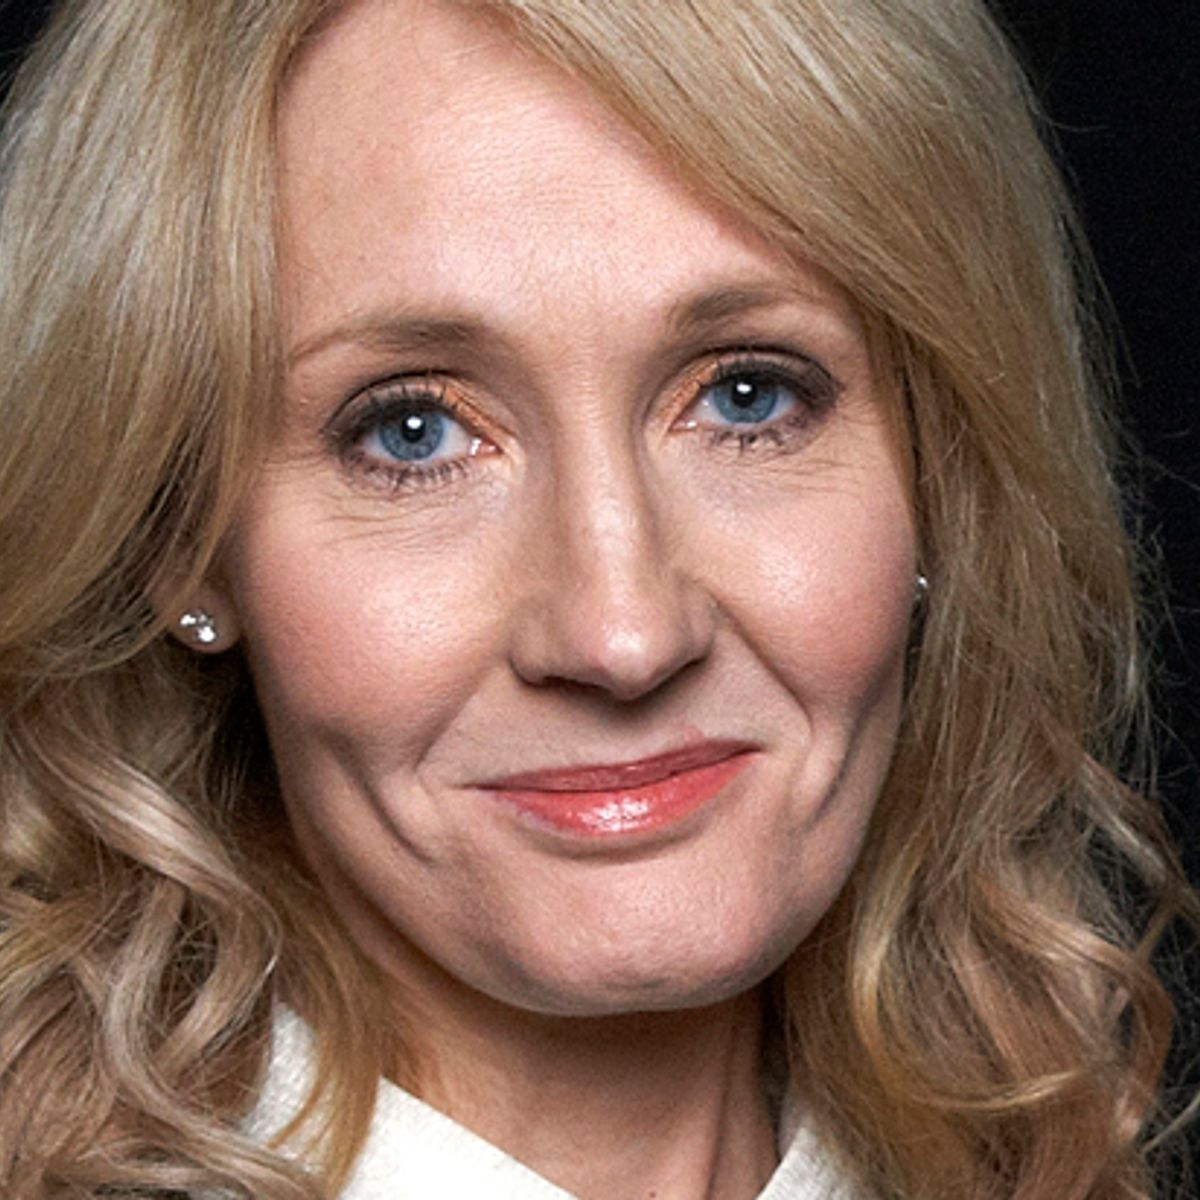 J.K. Rowling's rejection letters are a sorry statement on the future of book publishing